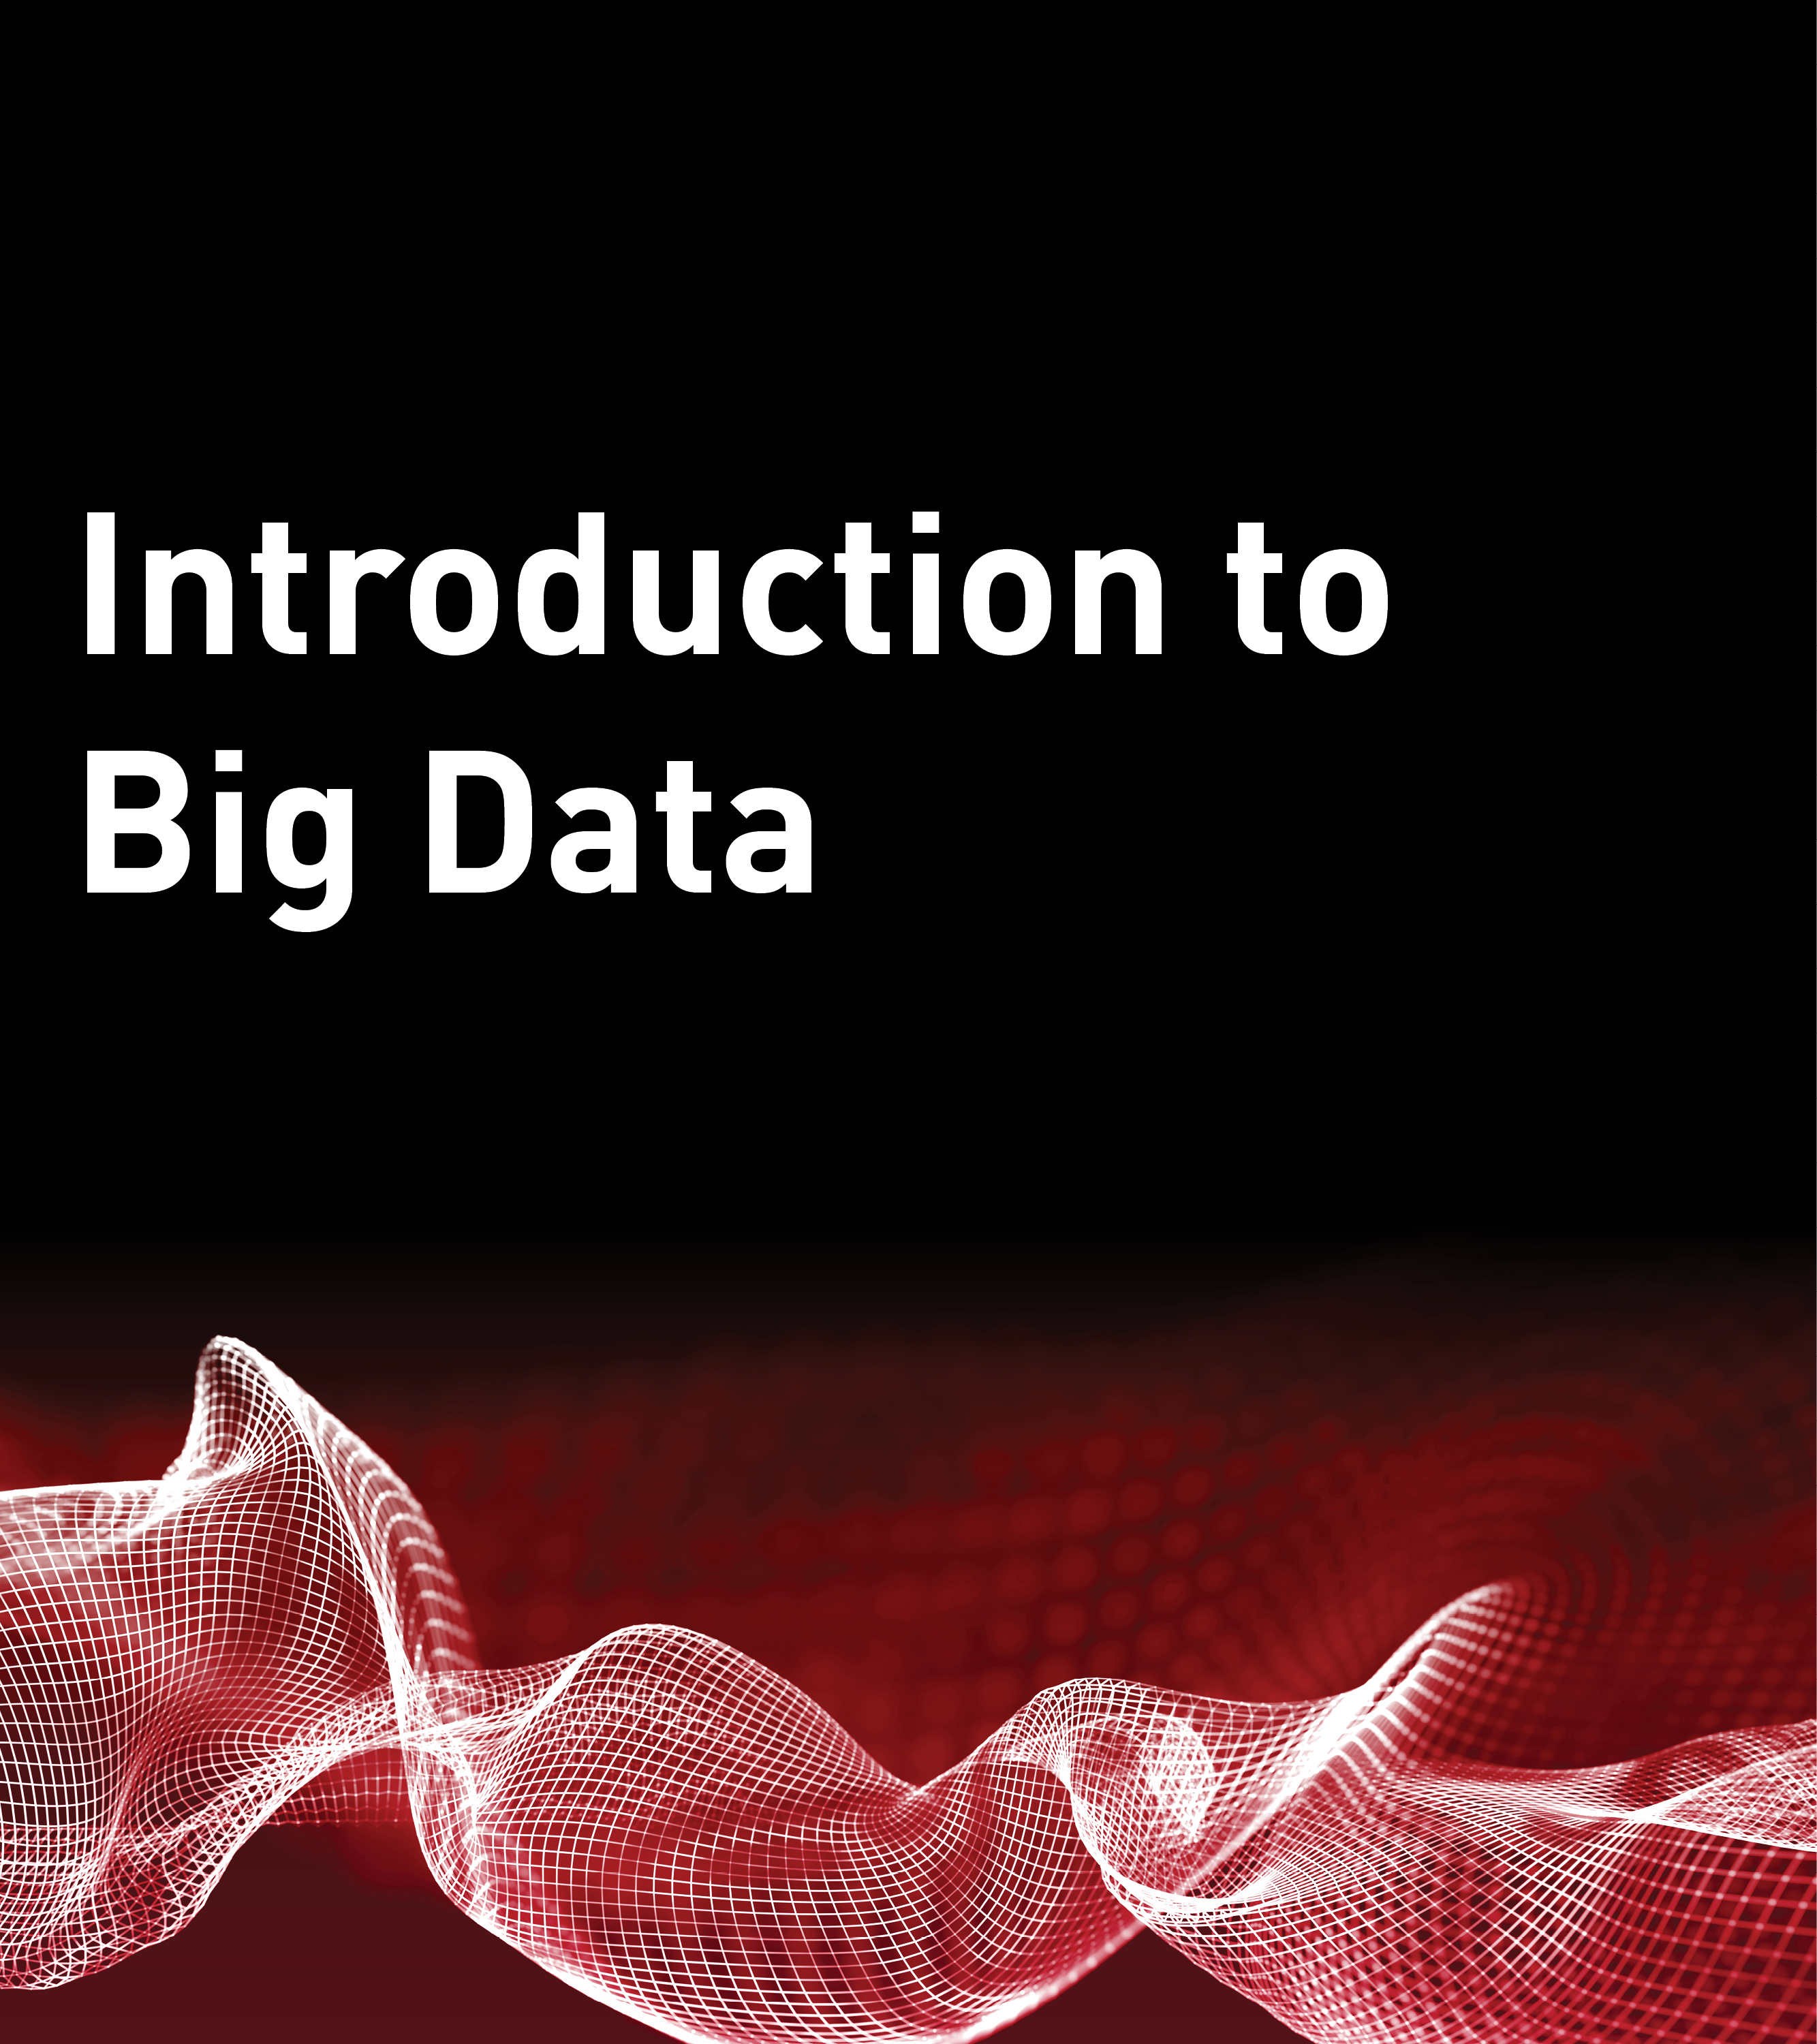 Introduction to Big Data